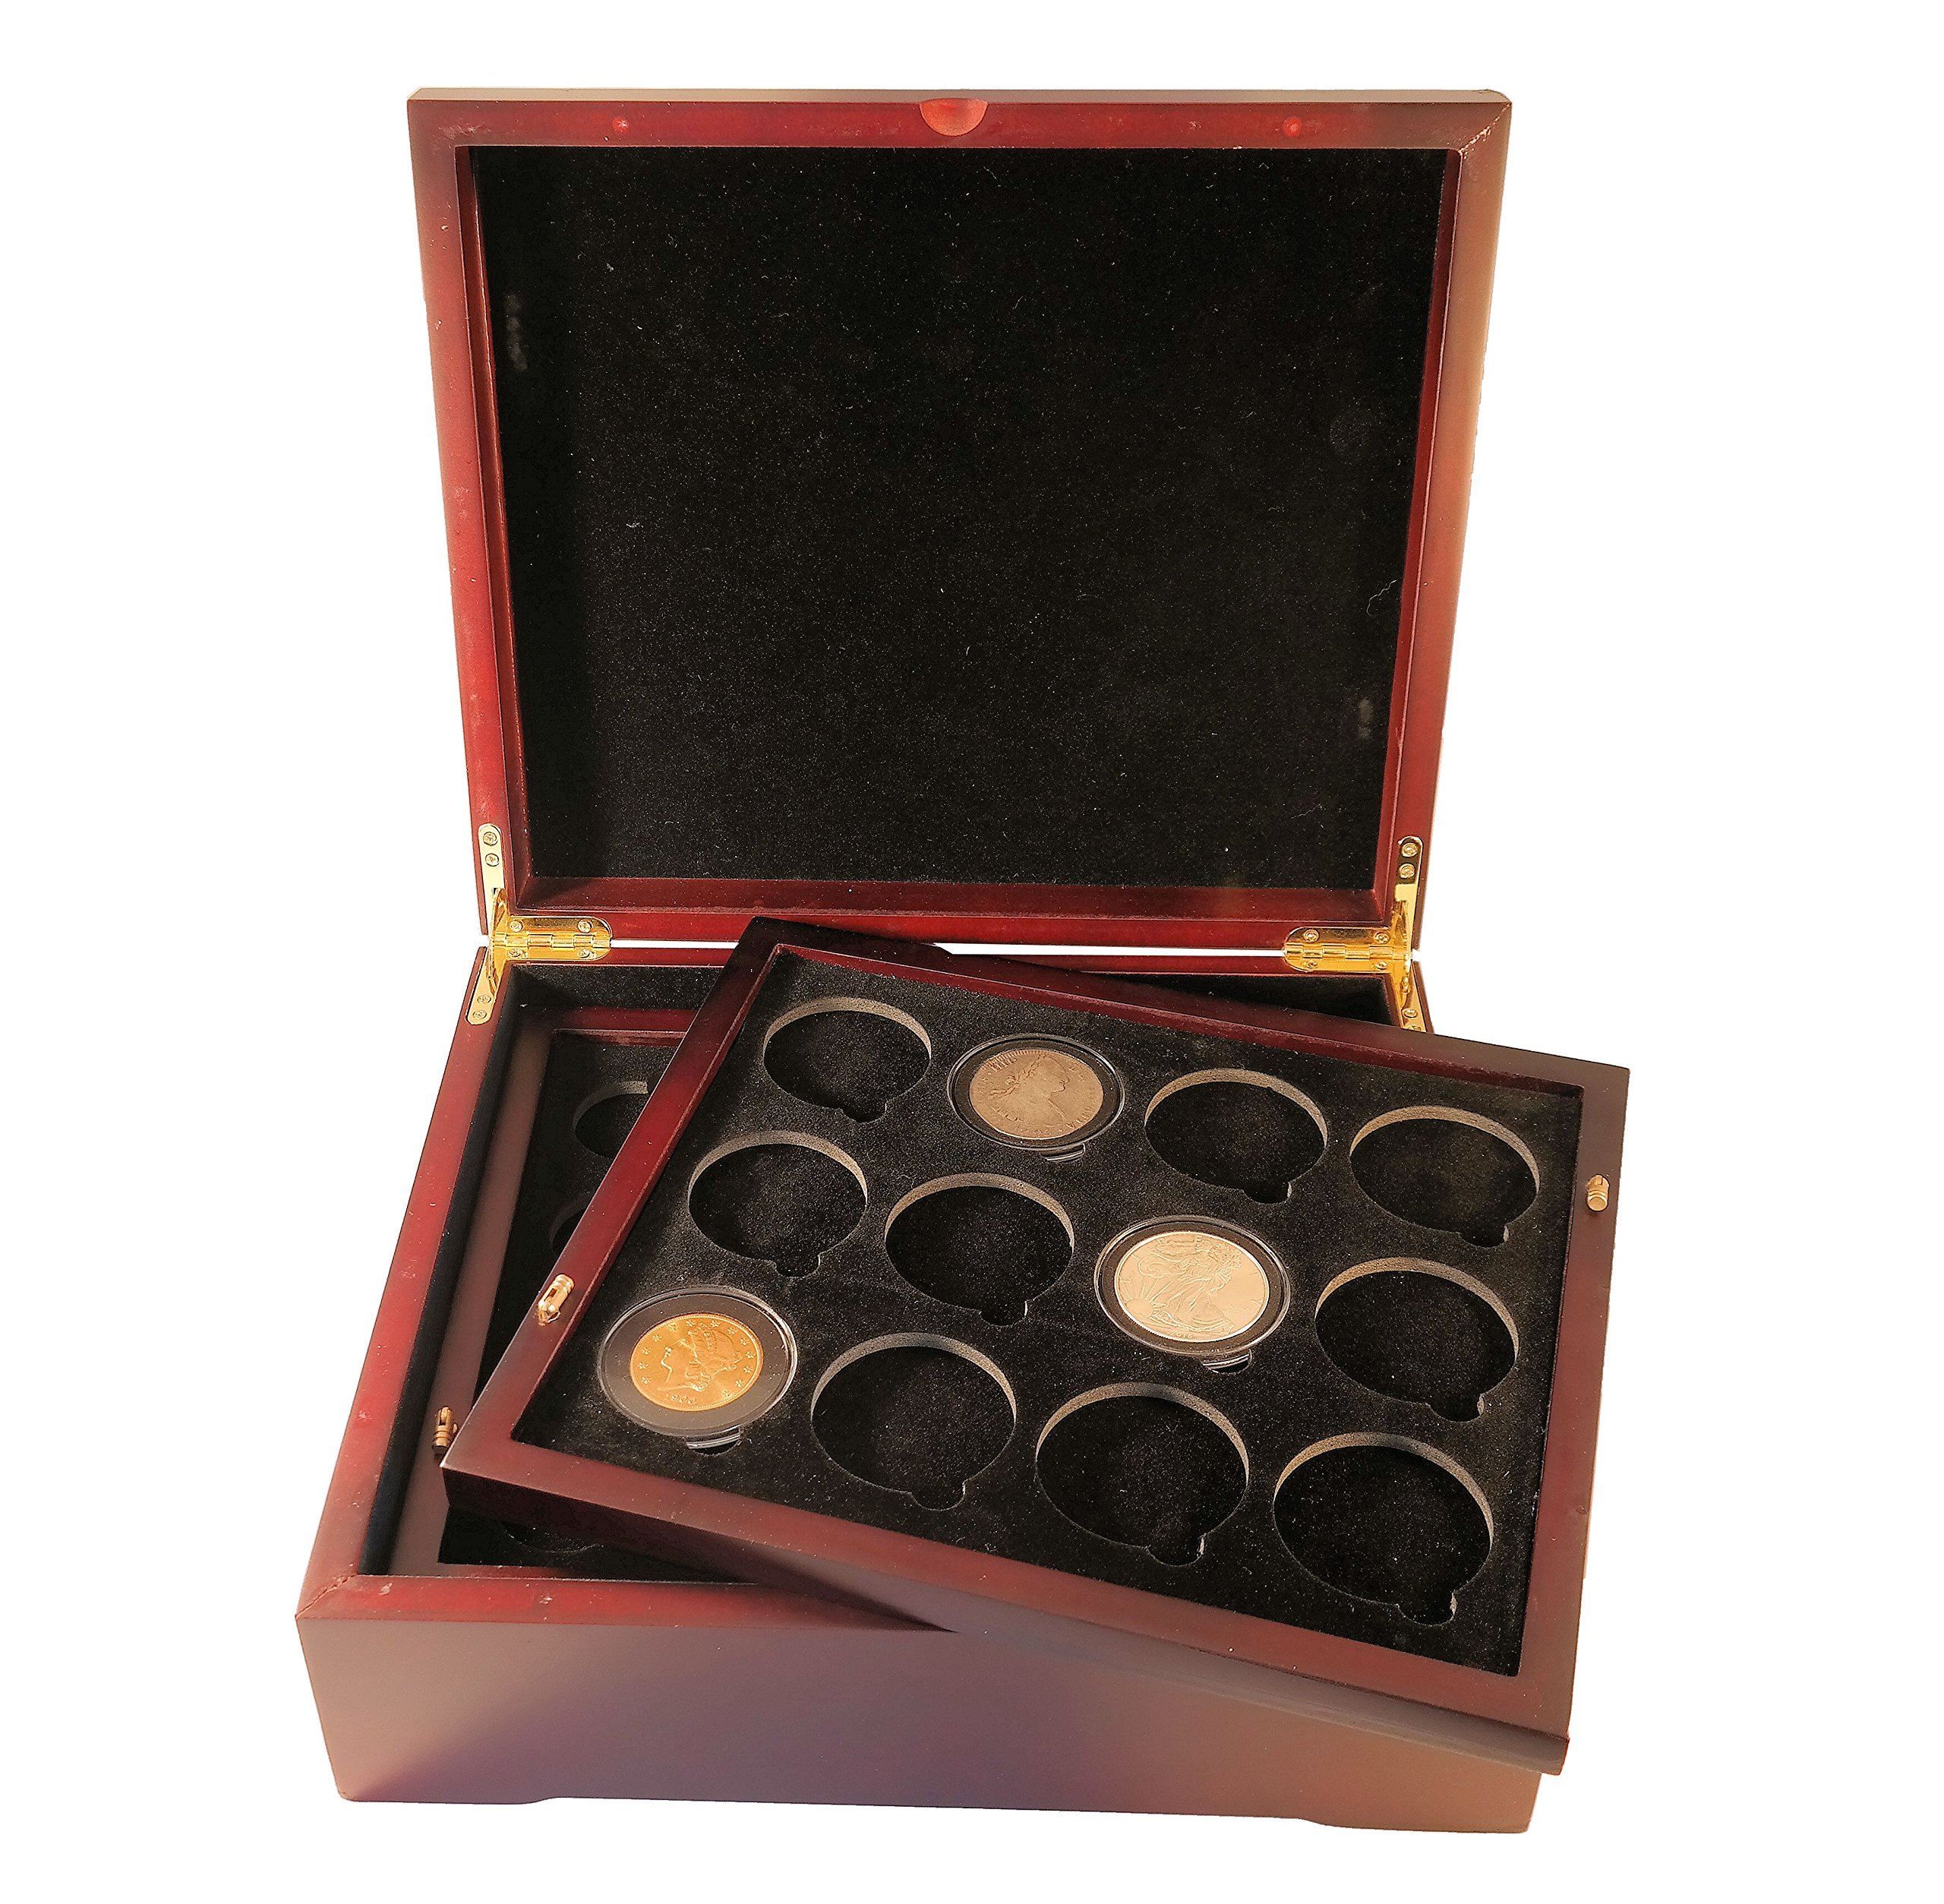 Coin Tray for 12 Extra Large or Air-Tite ''I'' Capsules / 2'' Challenge Coins fits in Mahogany Finish Wood Display Case by Guardhouse (Image #6)